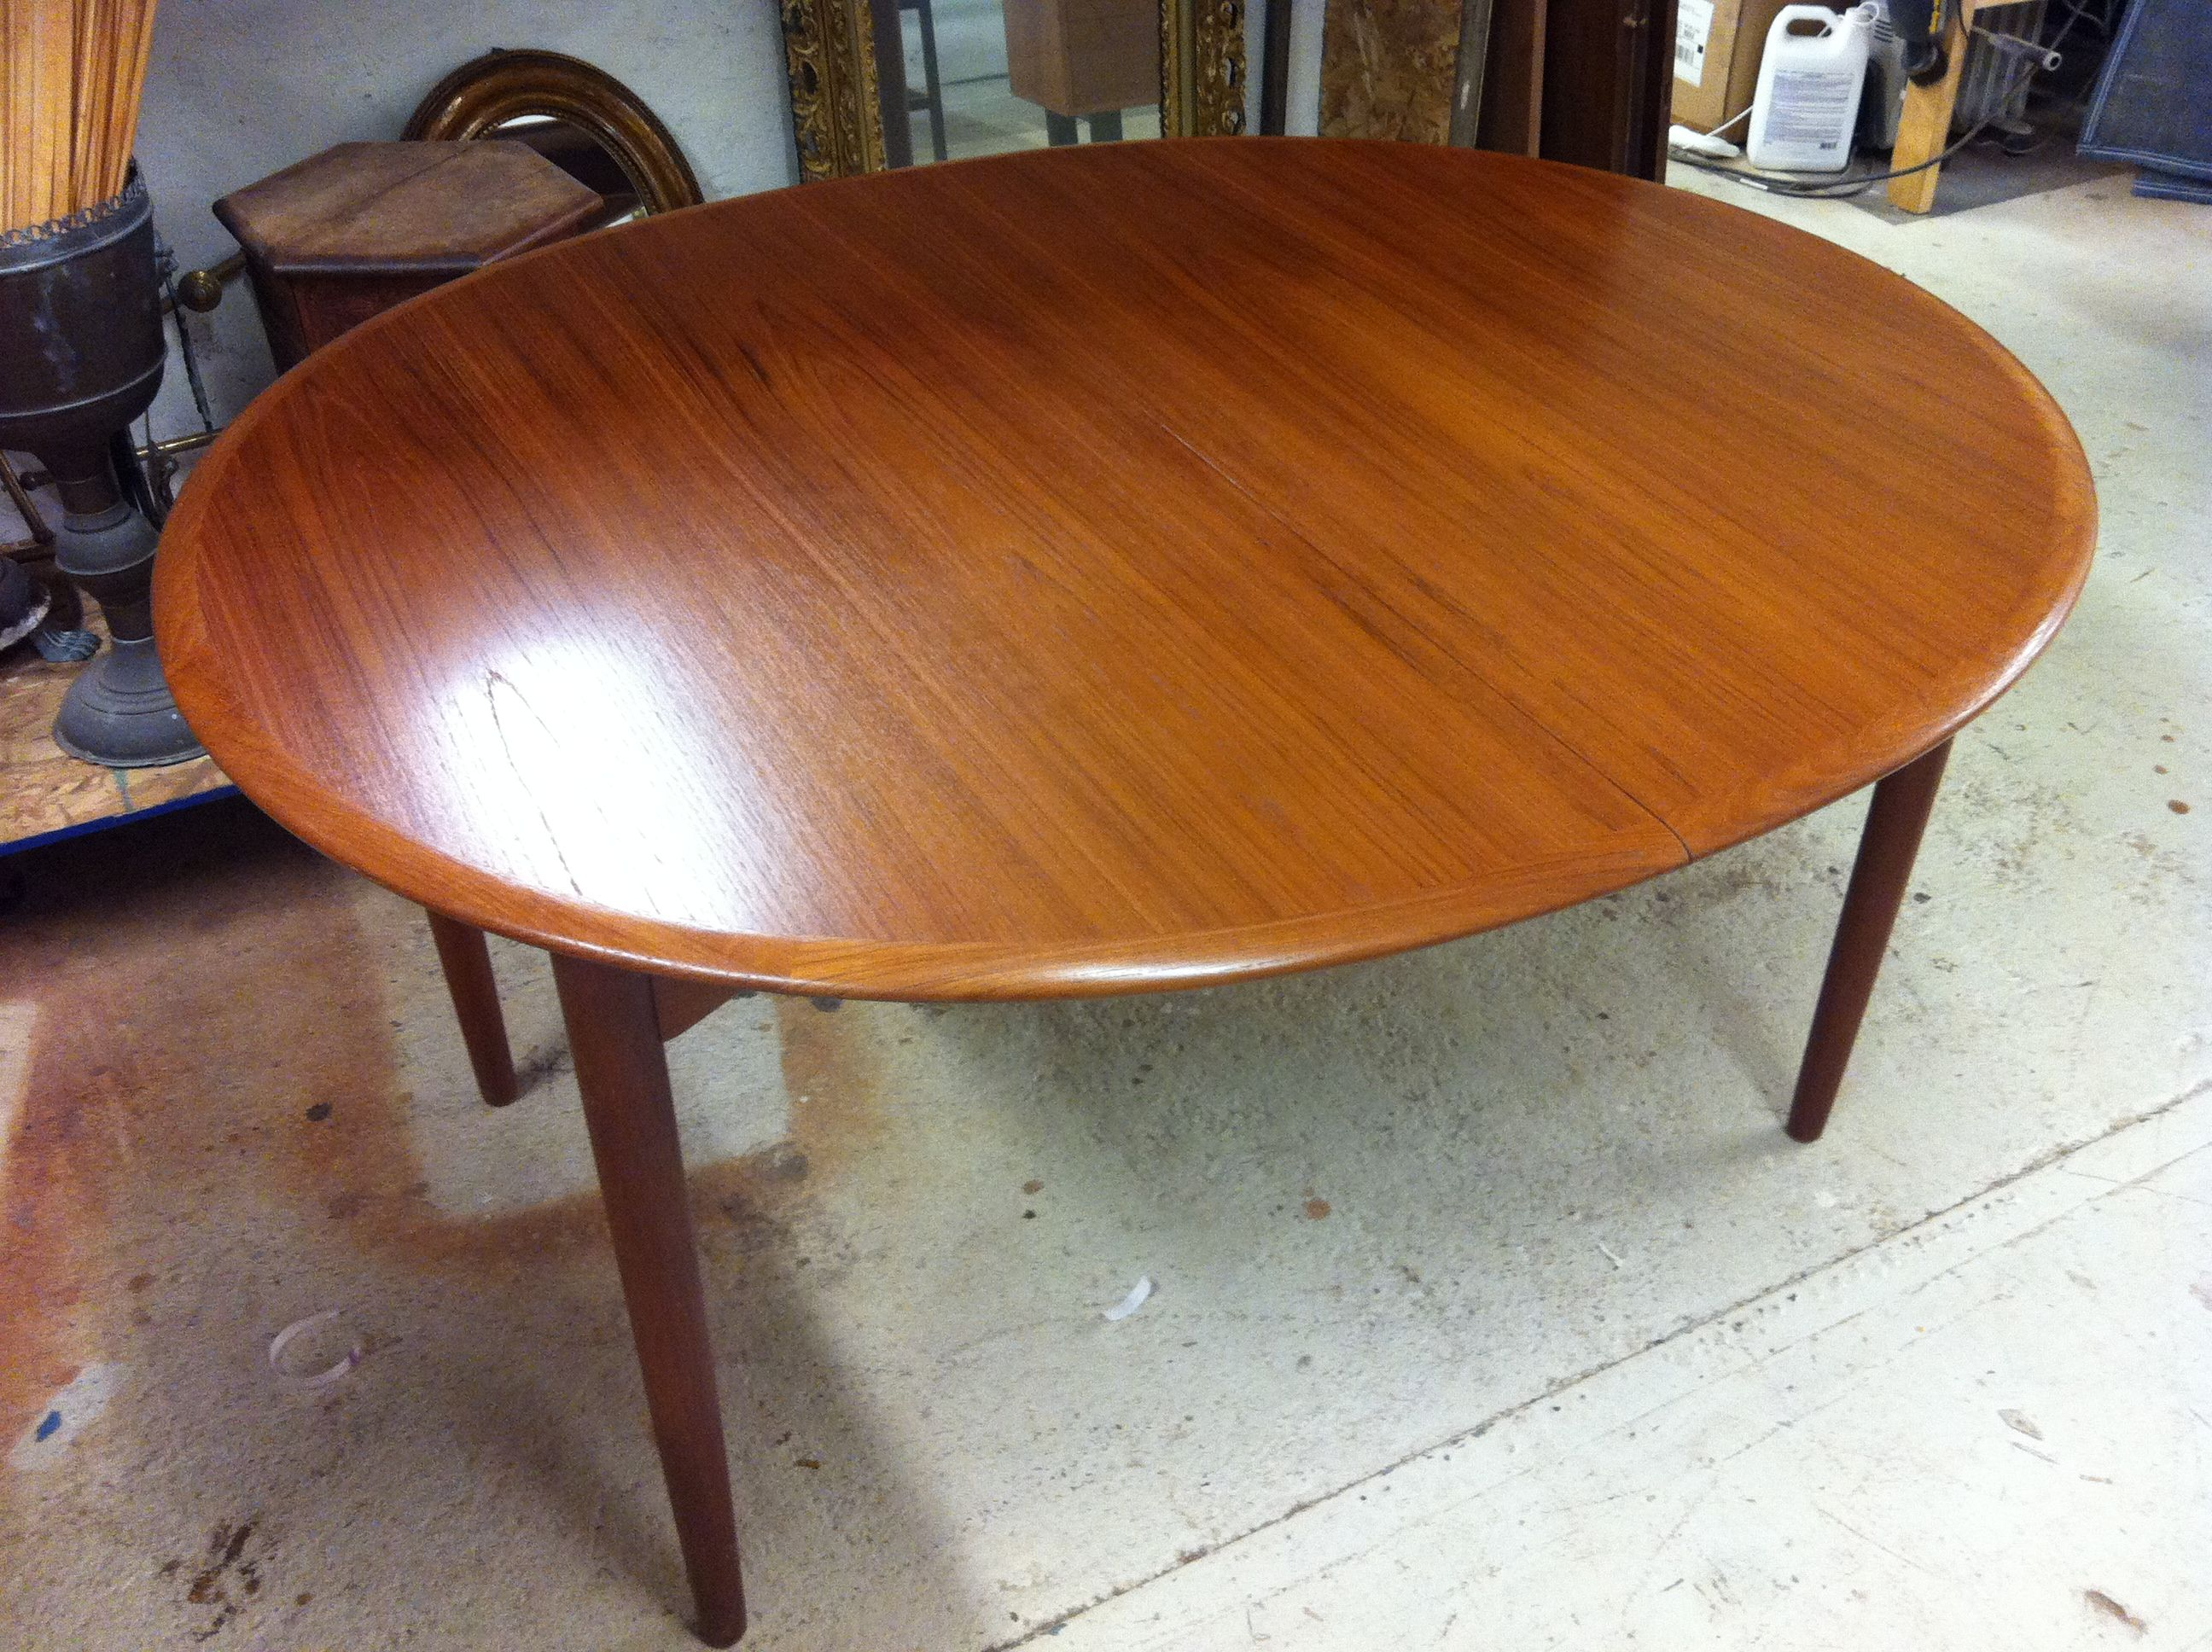 A Refinished Midcentury Dining Table